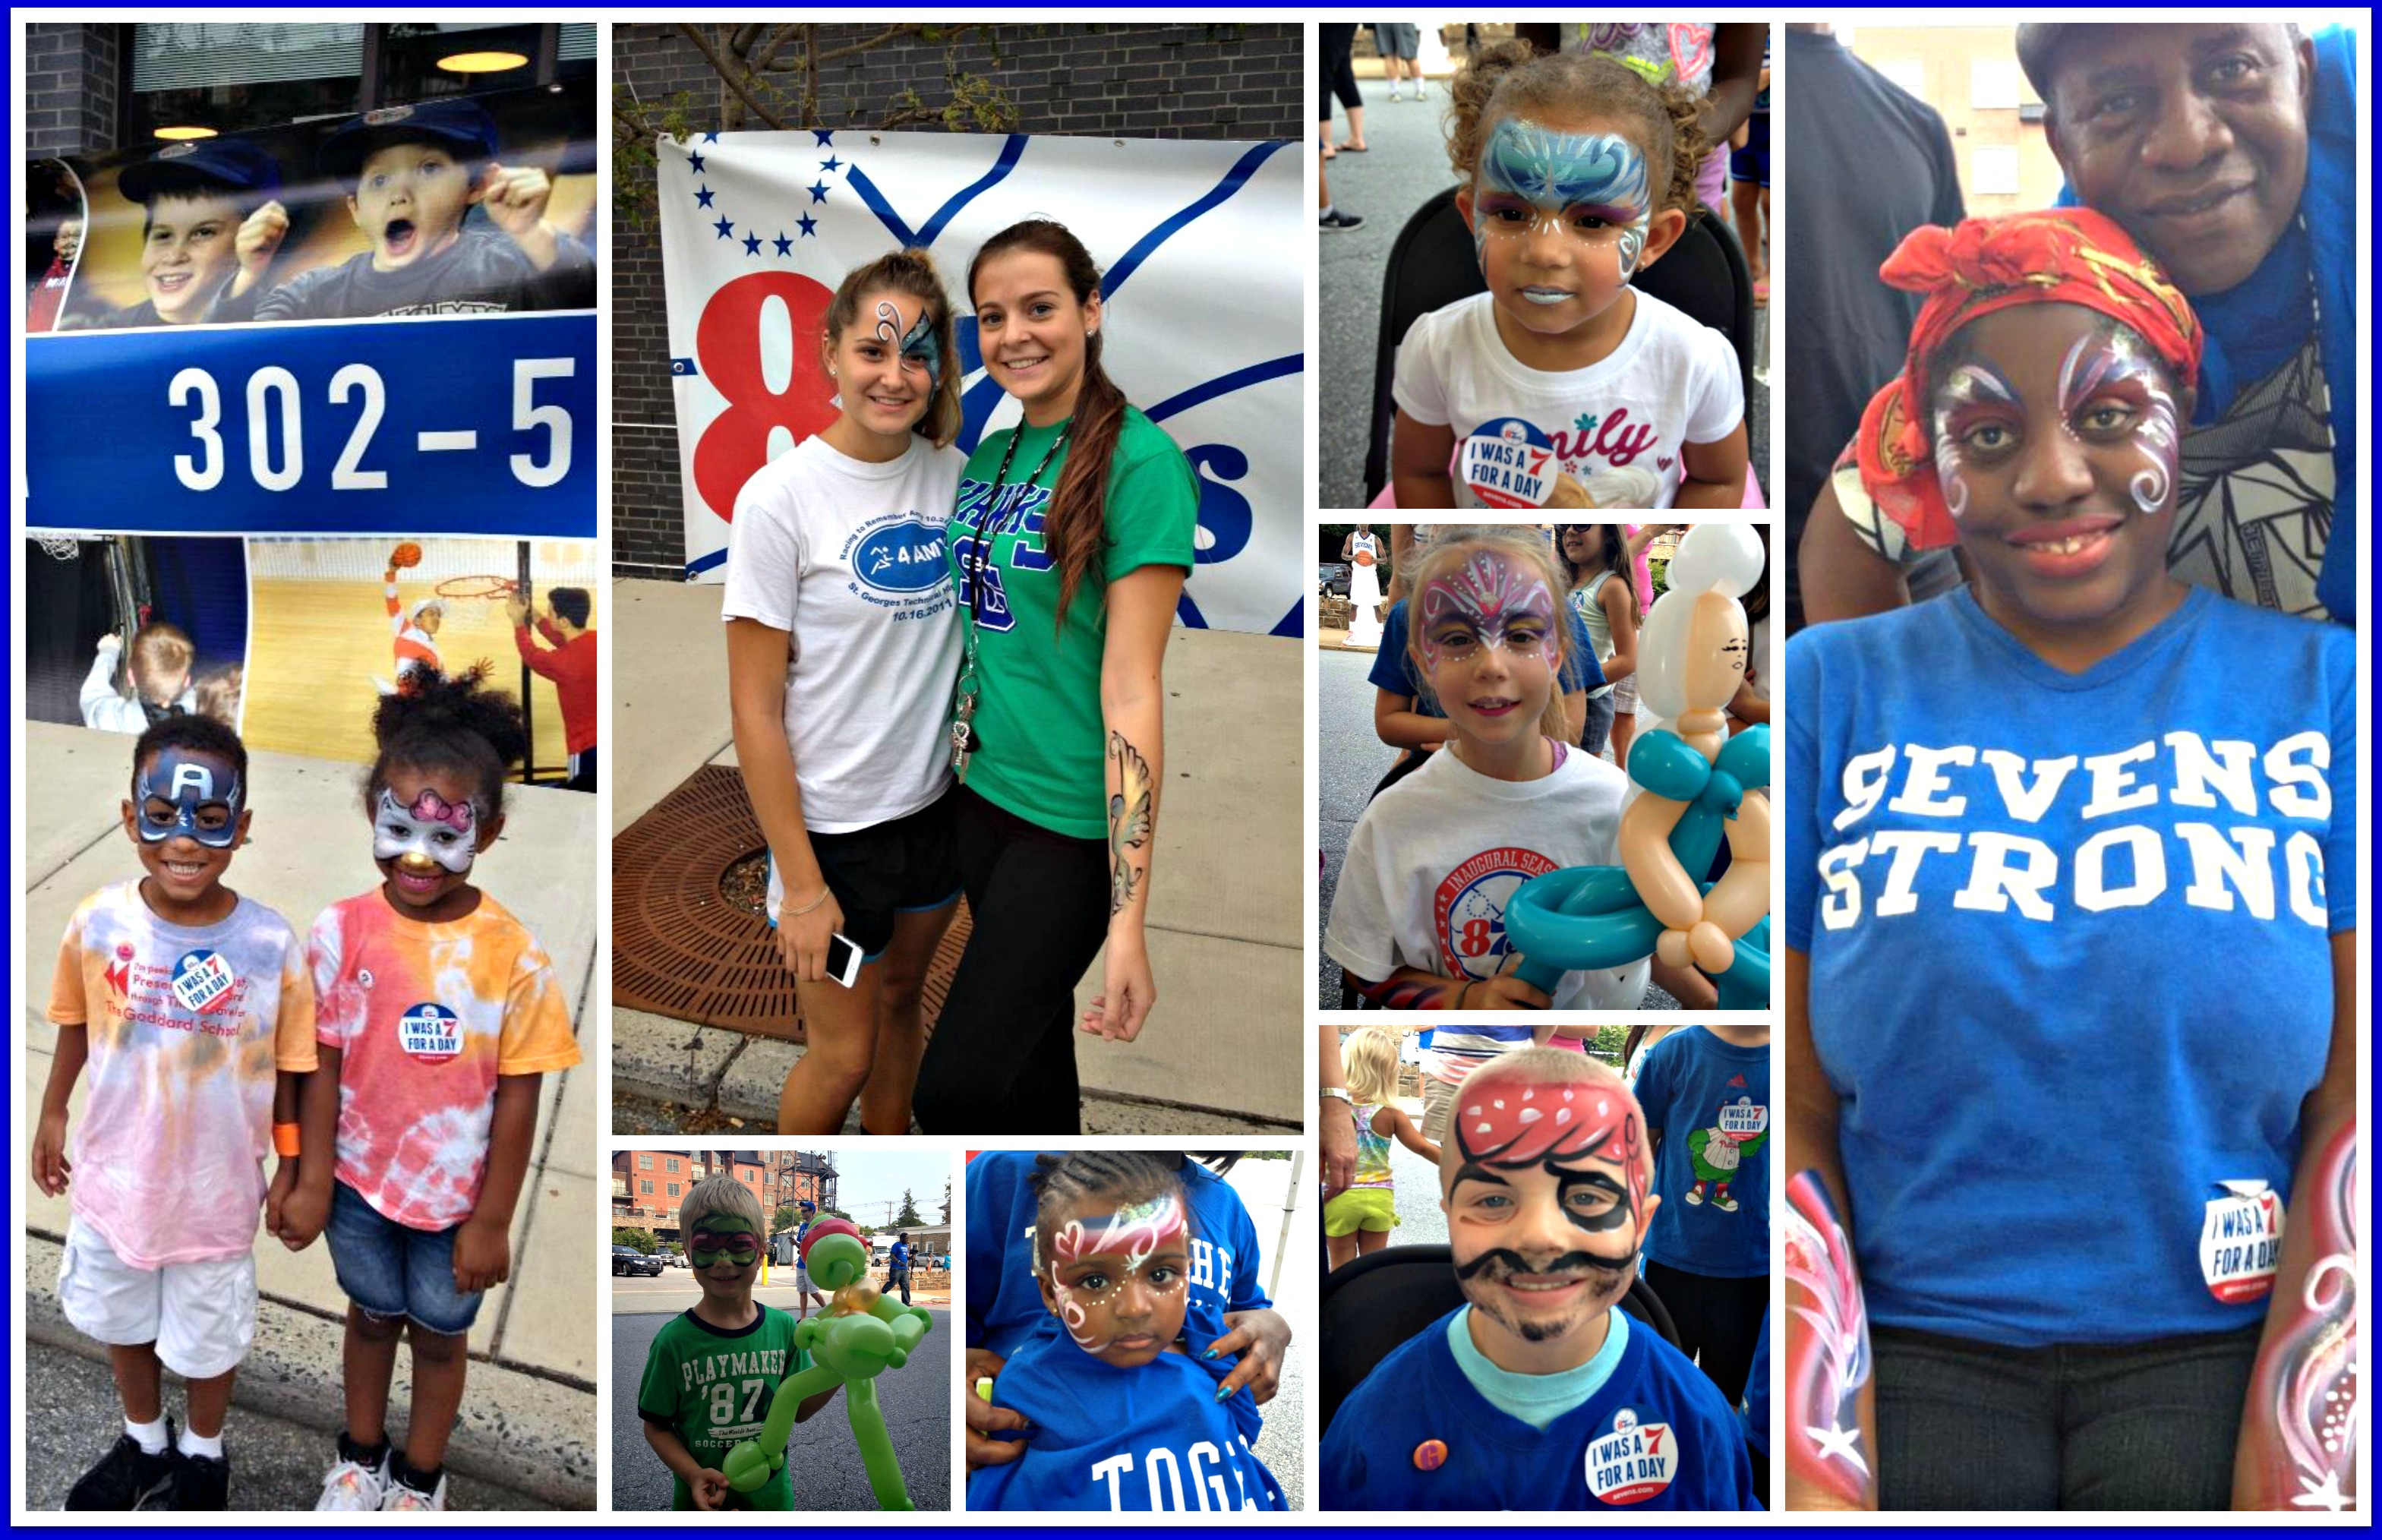 87ers Day Collage